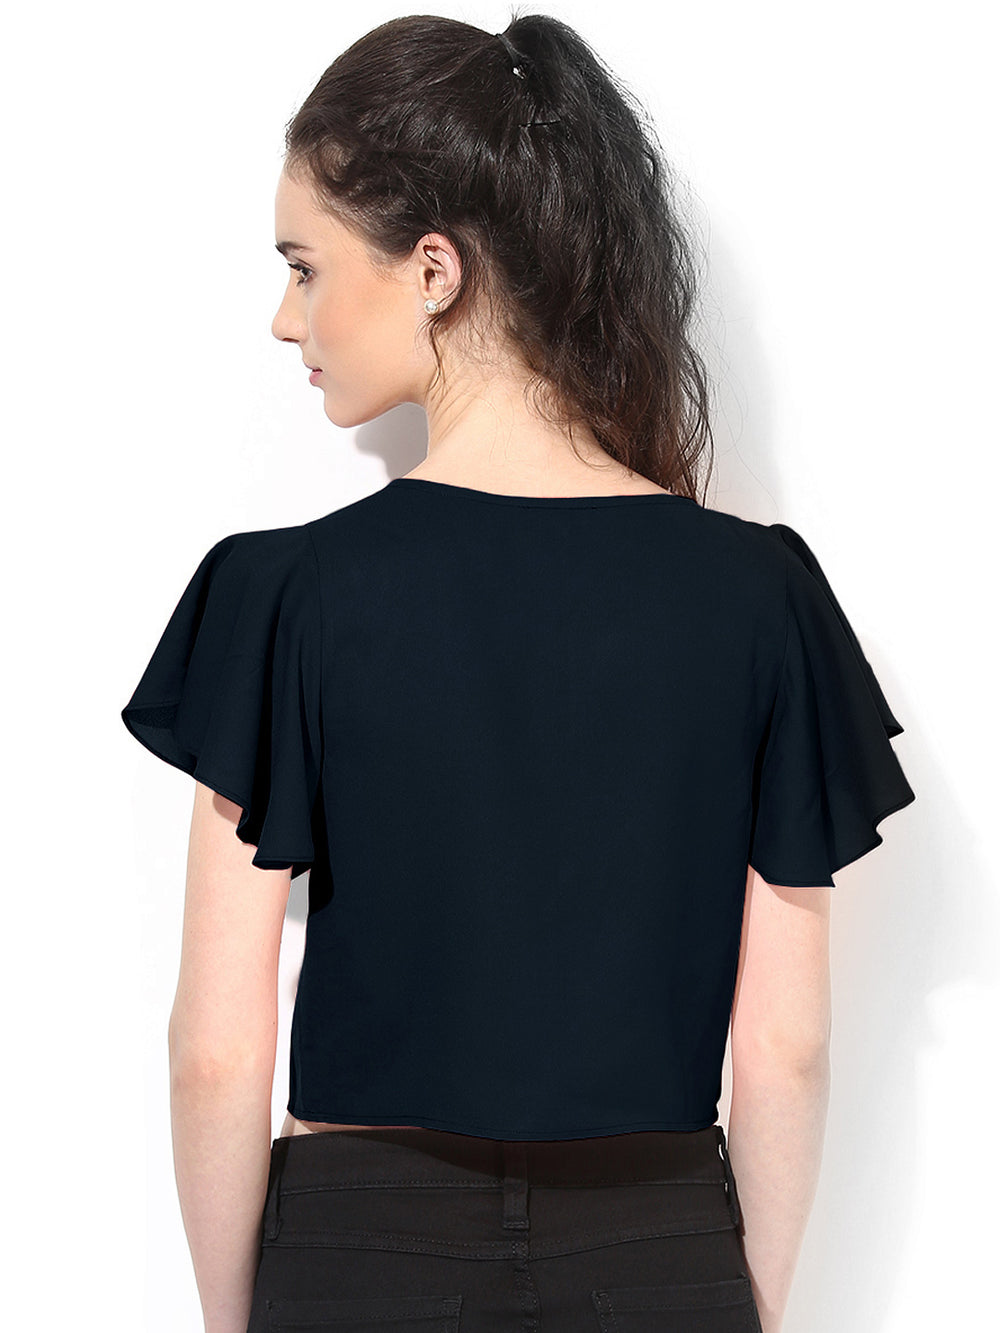 Besiva Black Top